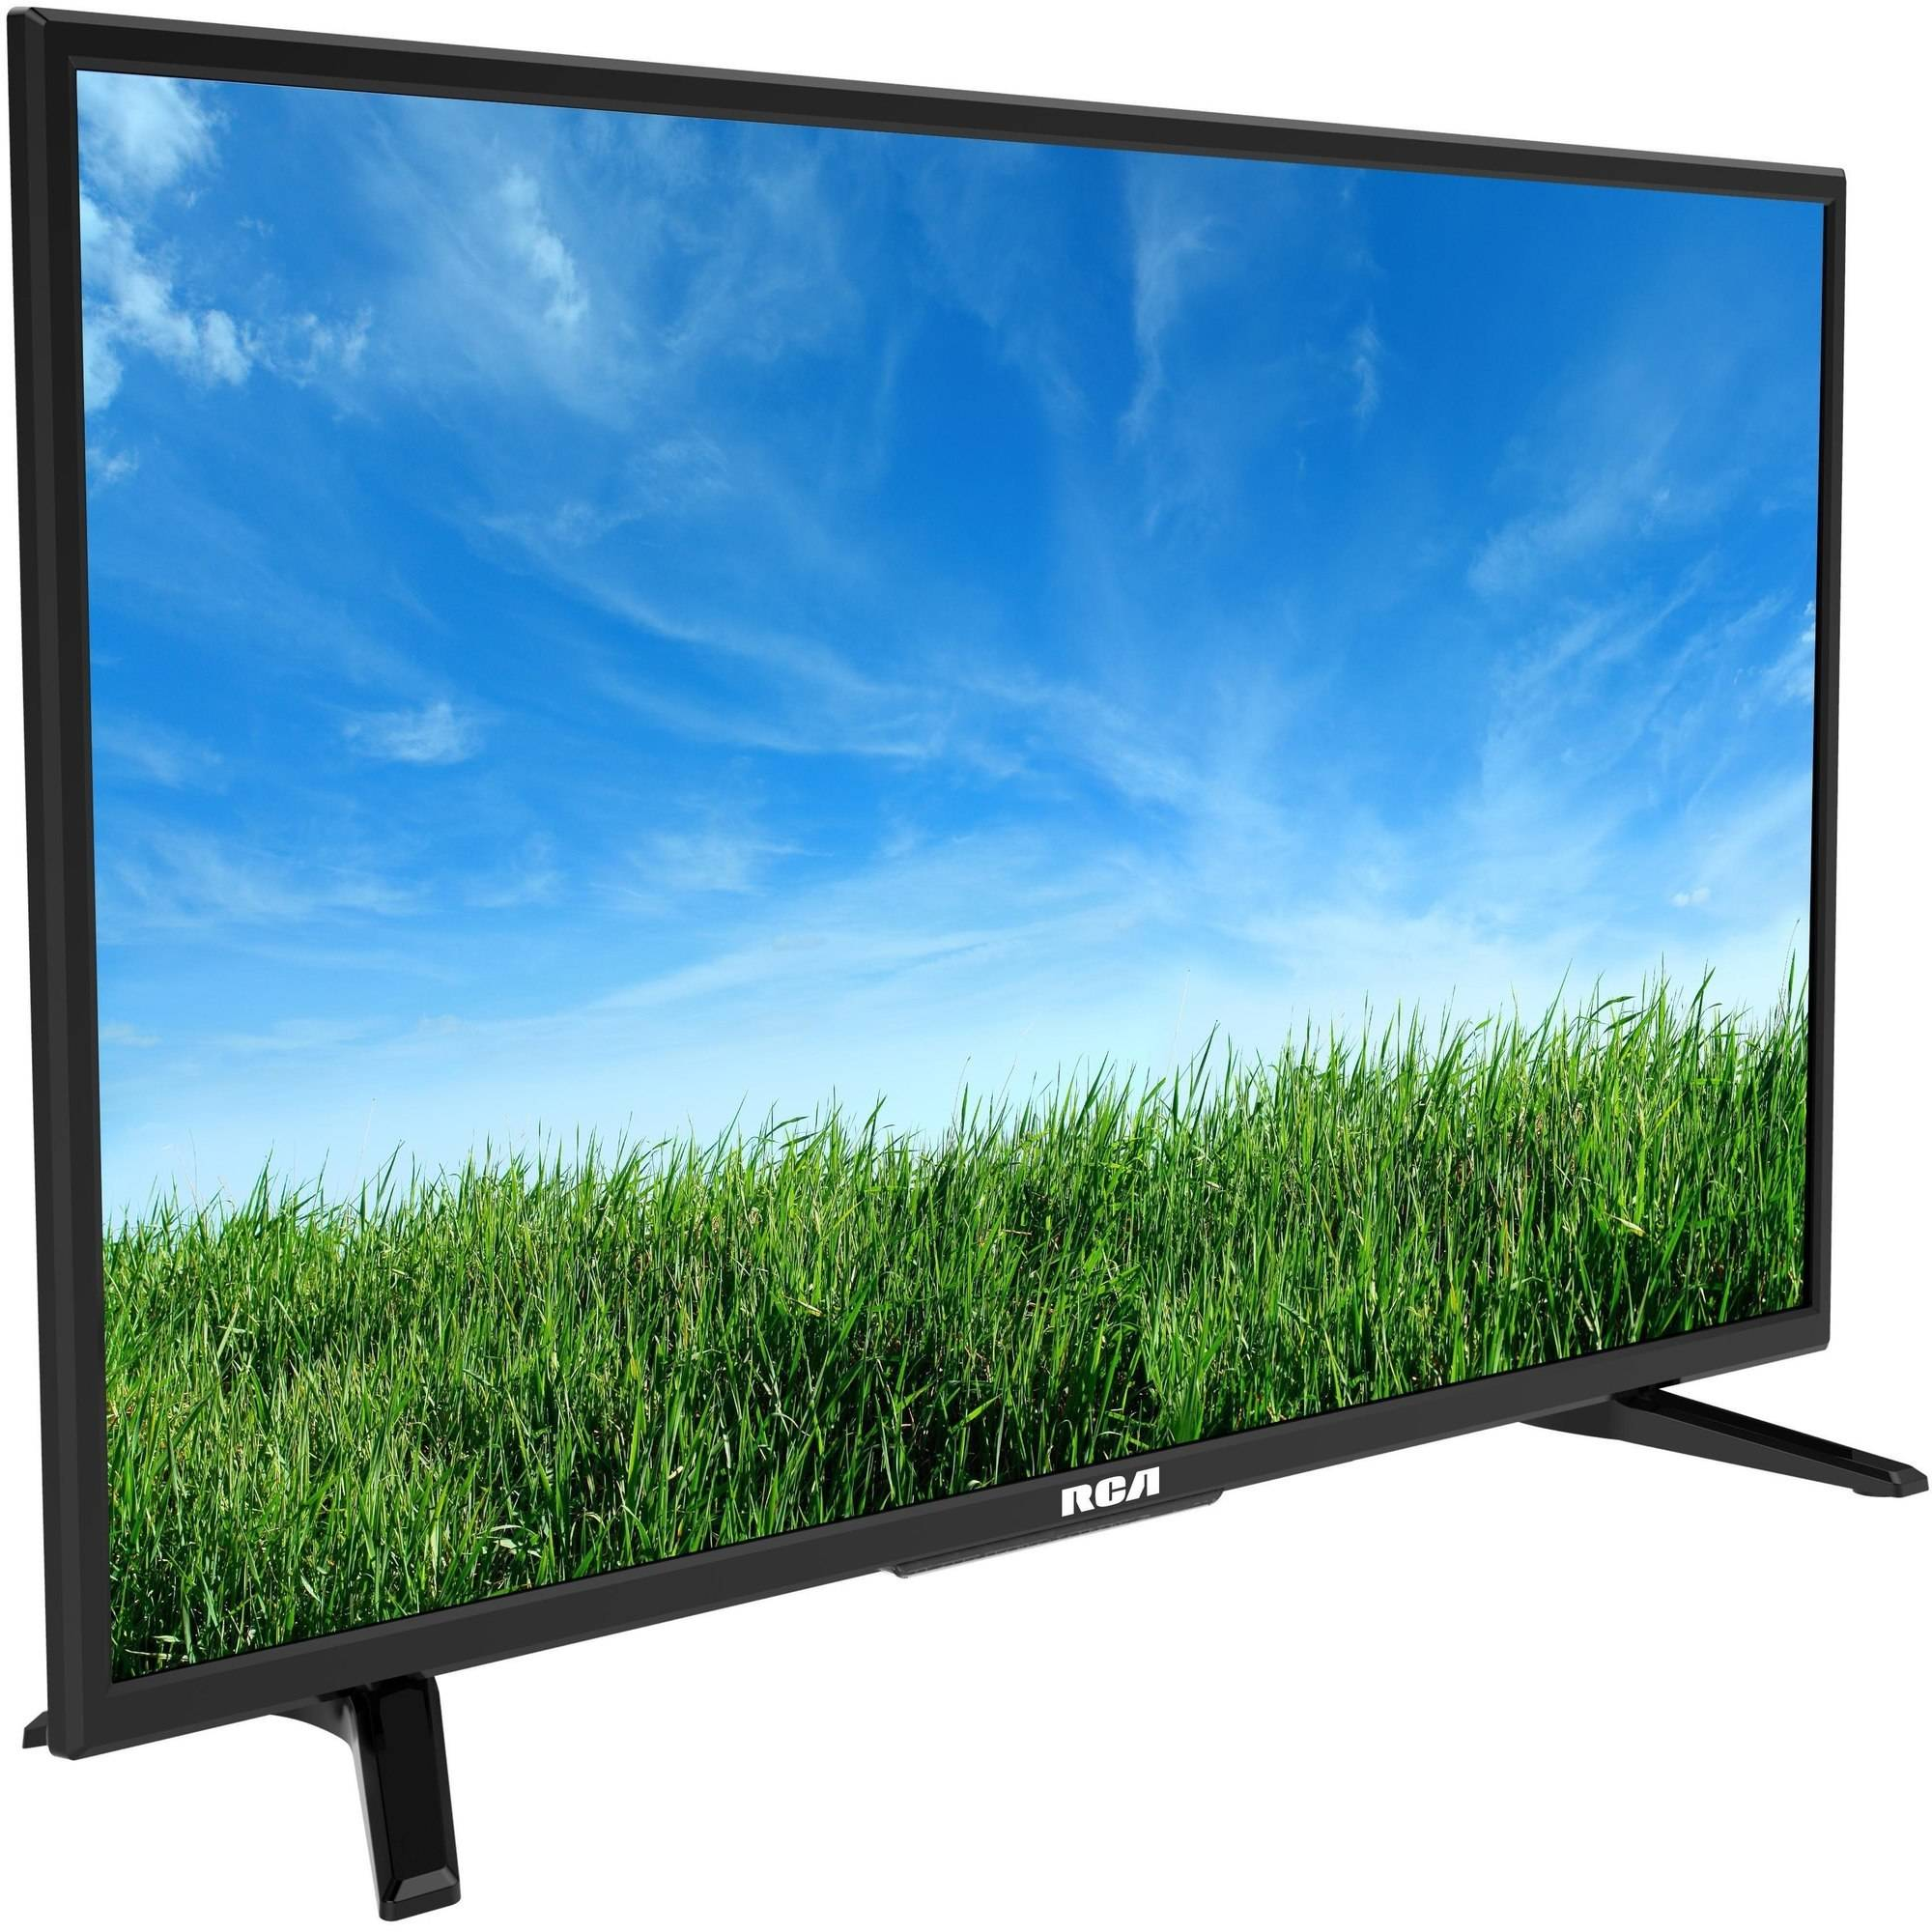 Sale RCA 32 INCH TV DVD COMBO 720p 3 HDMI HDTV LED YPBPR